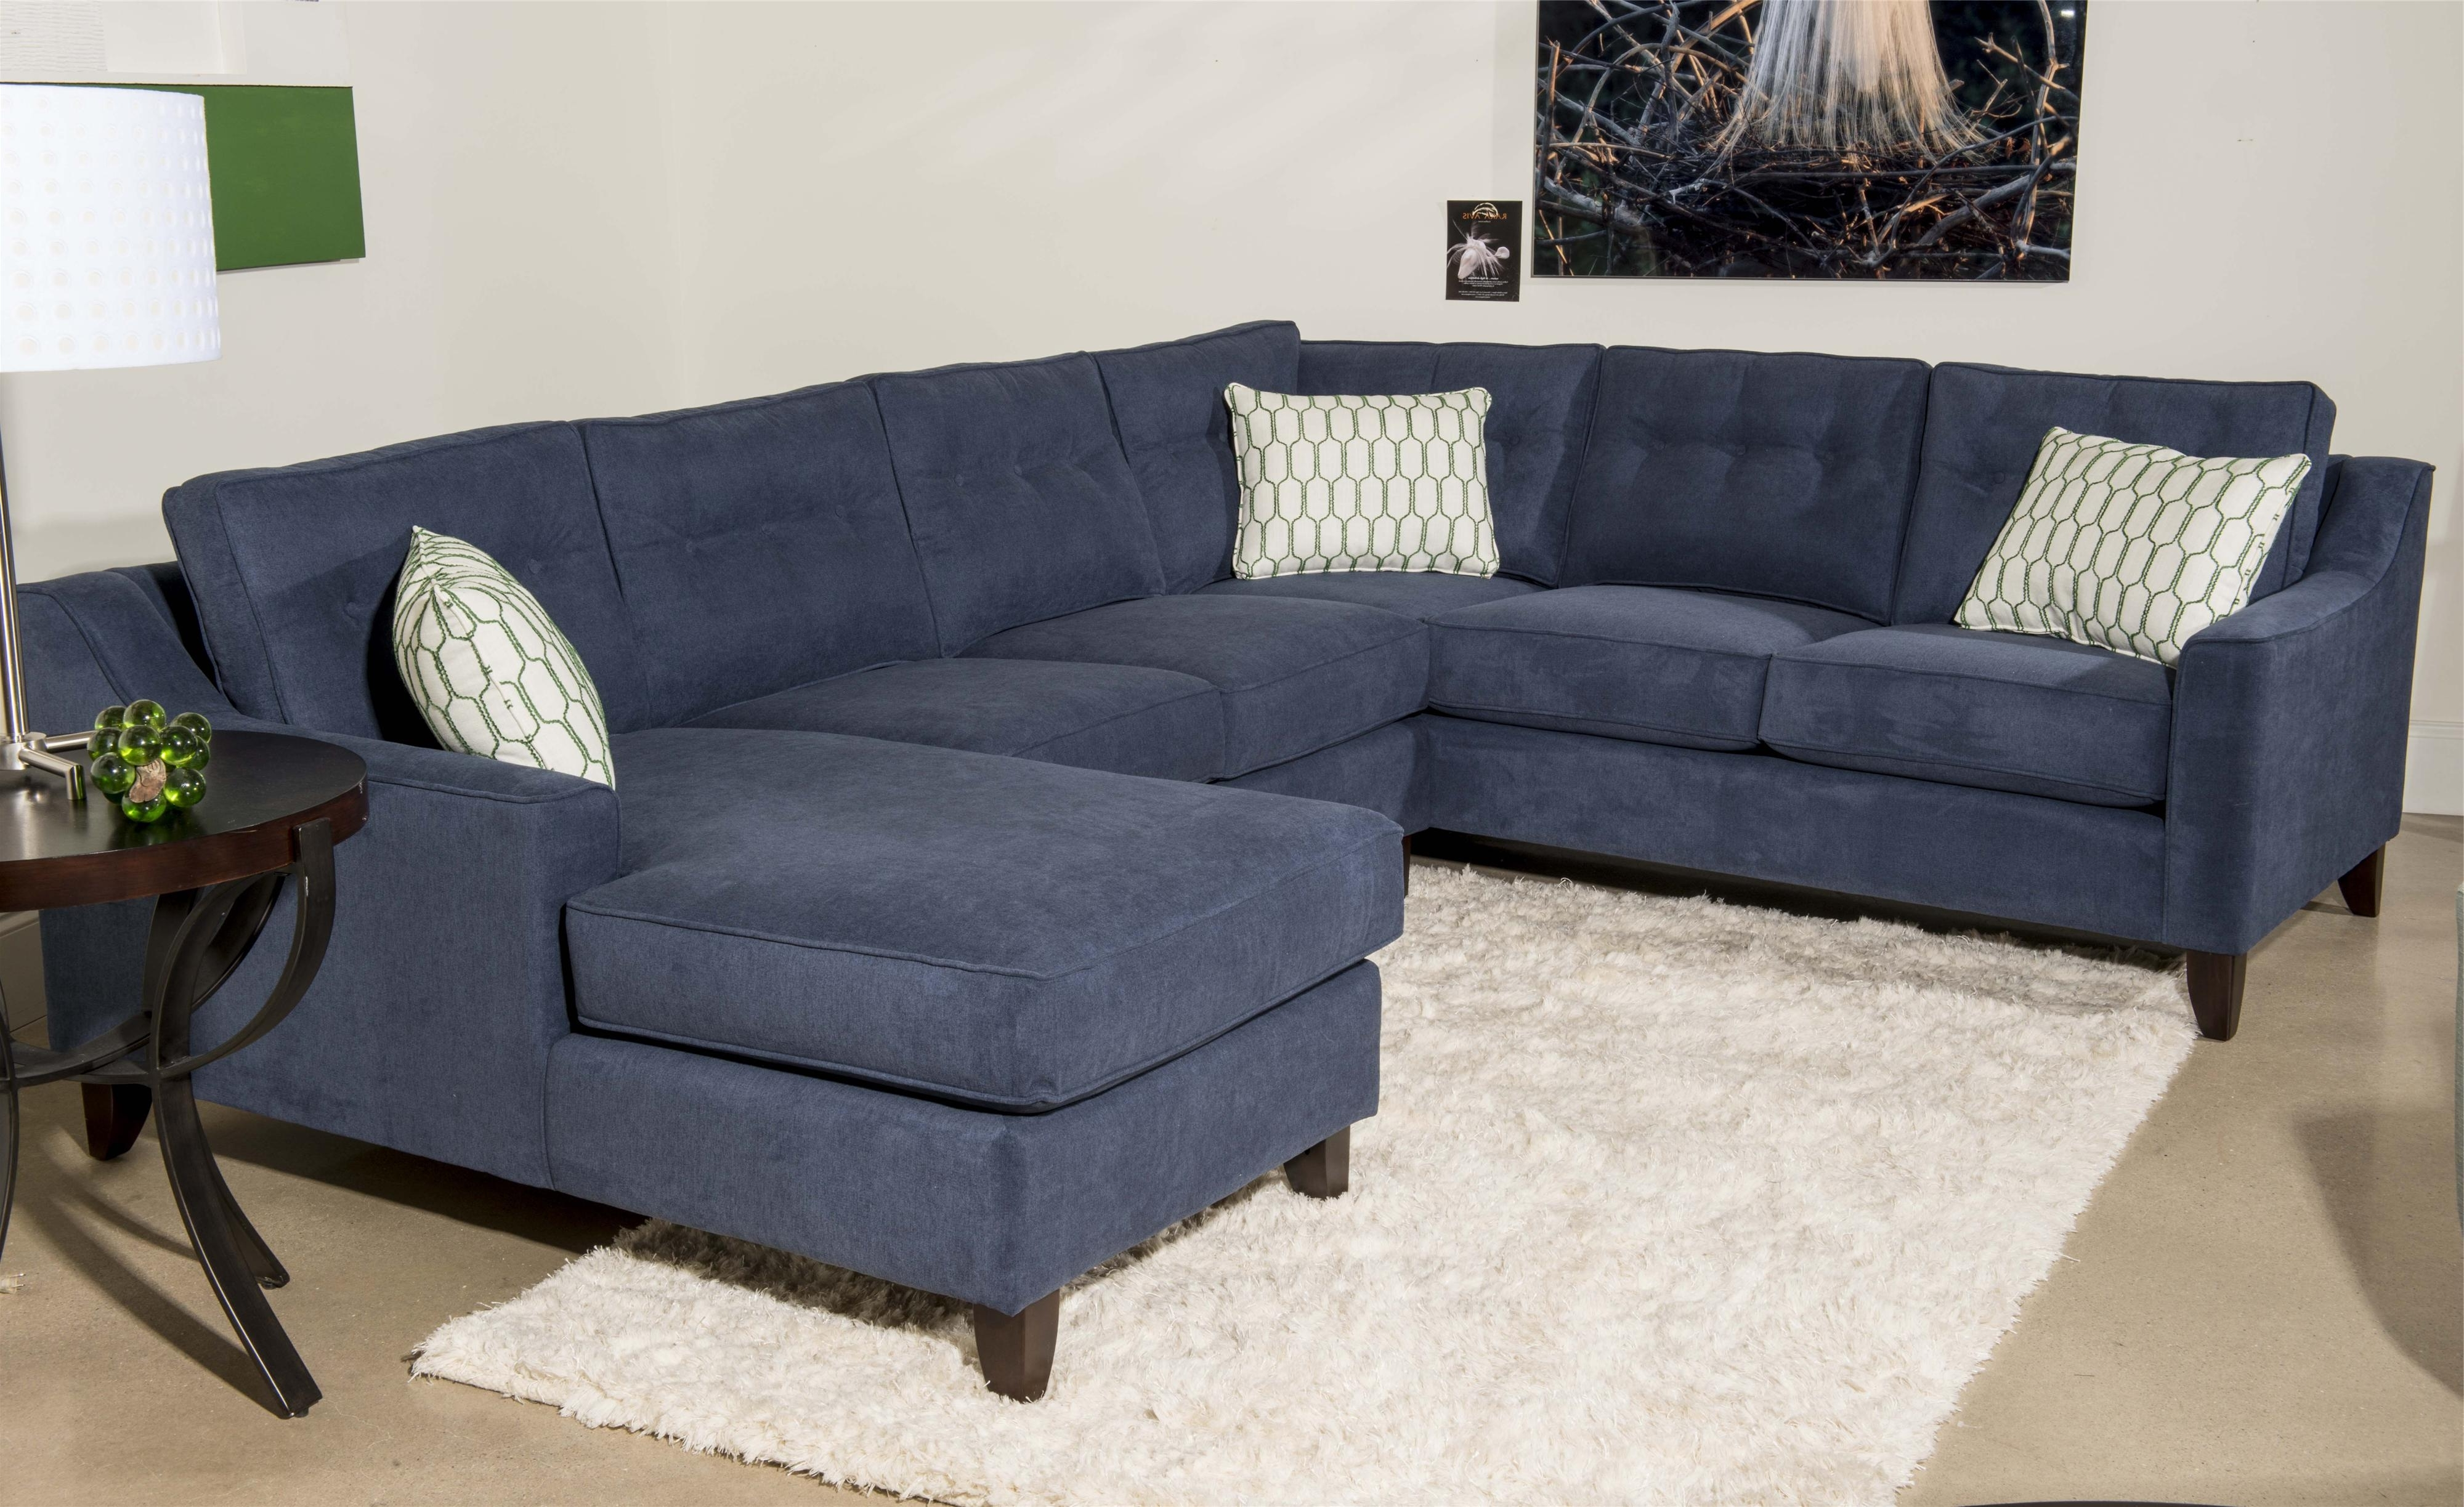 Newest Sectional Chaise Sofas In Klaussner Audrina Contemporary 3 Piece Sectional Sofa With Chaise (View 4 of 15)